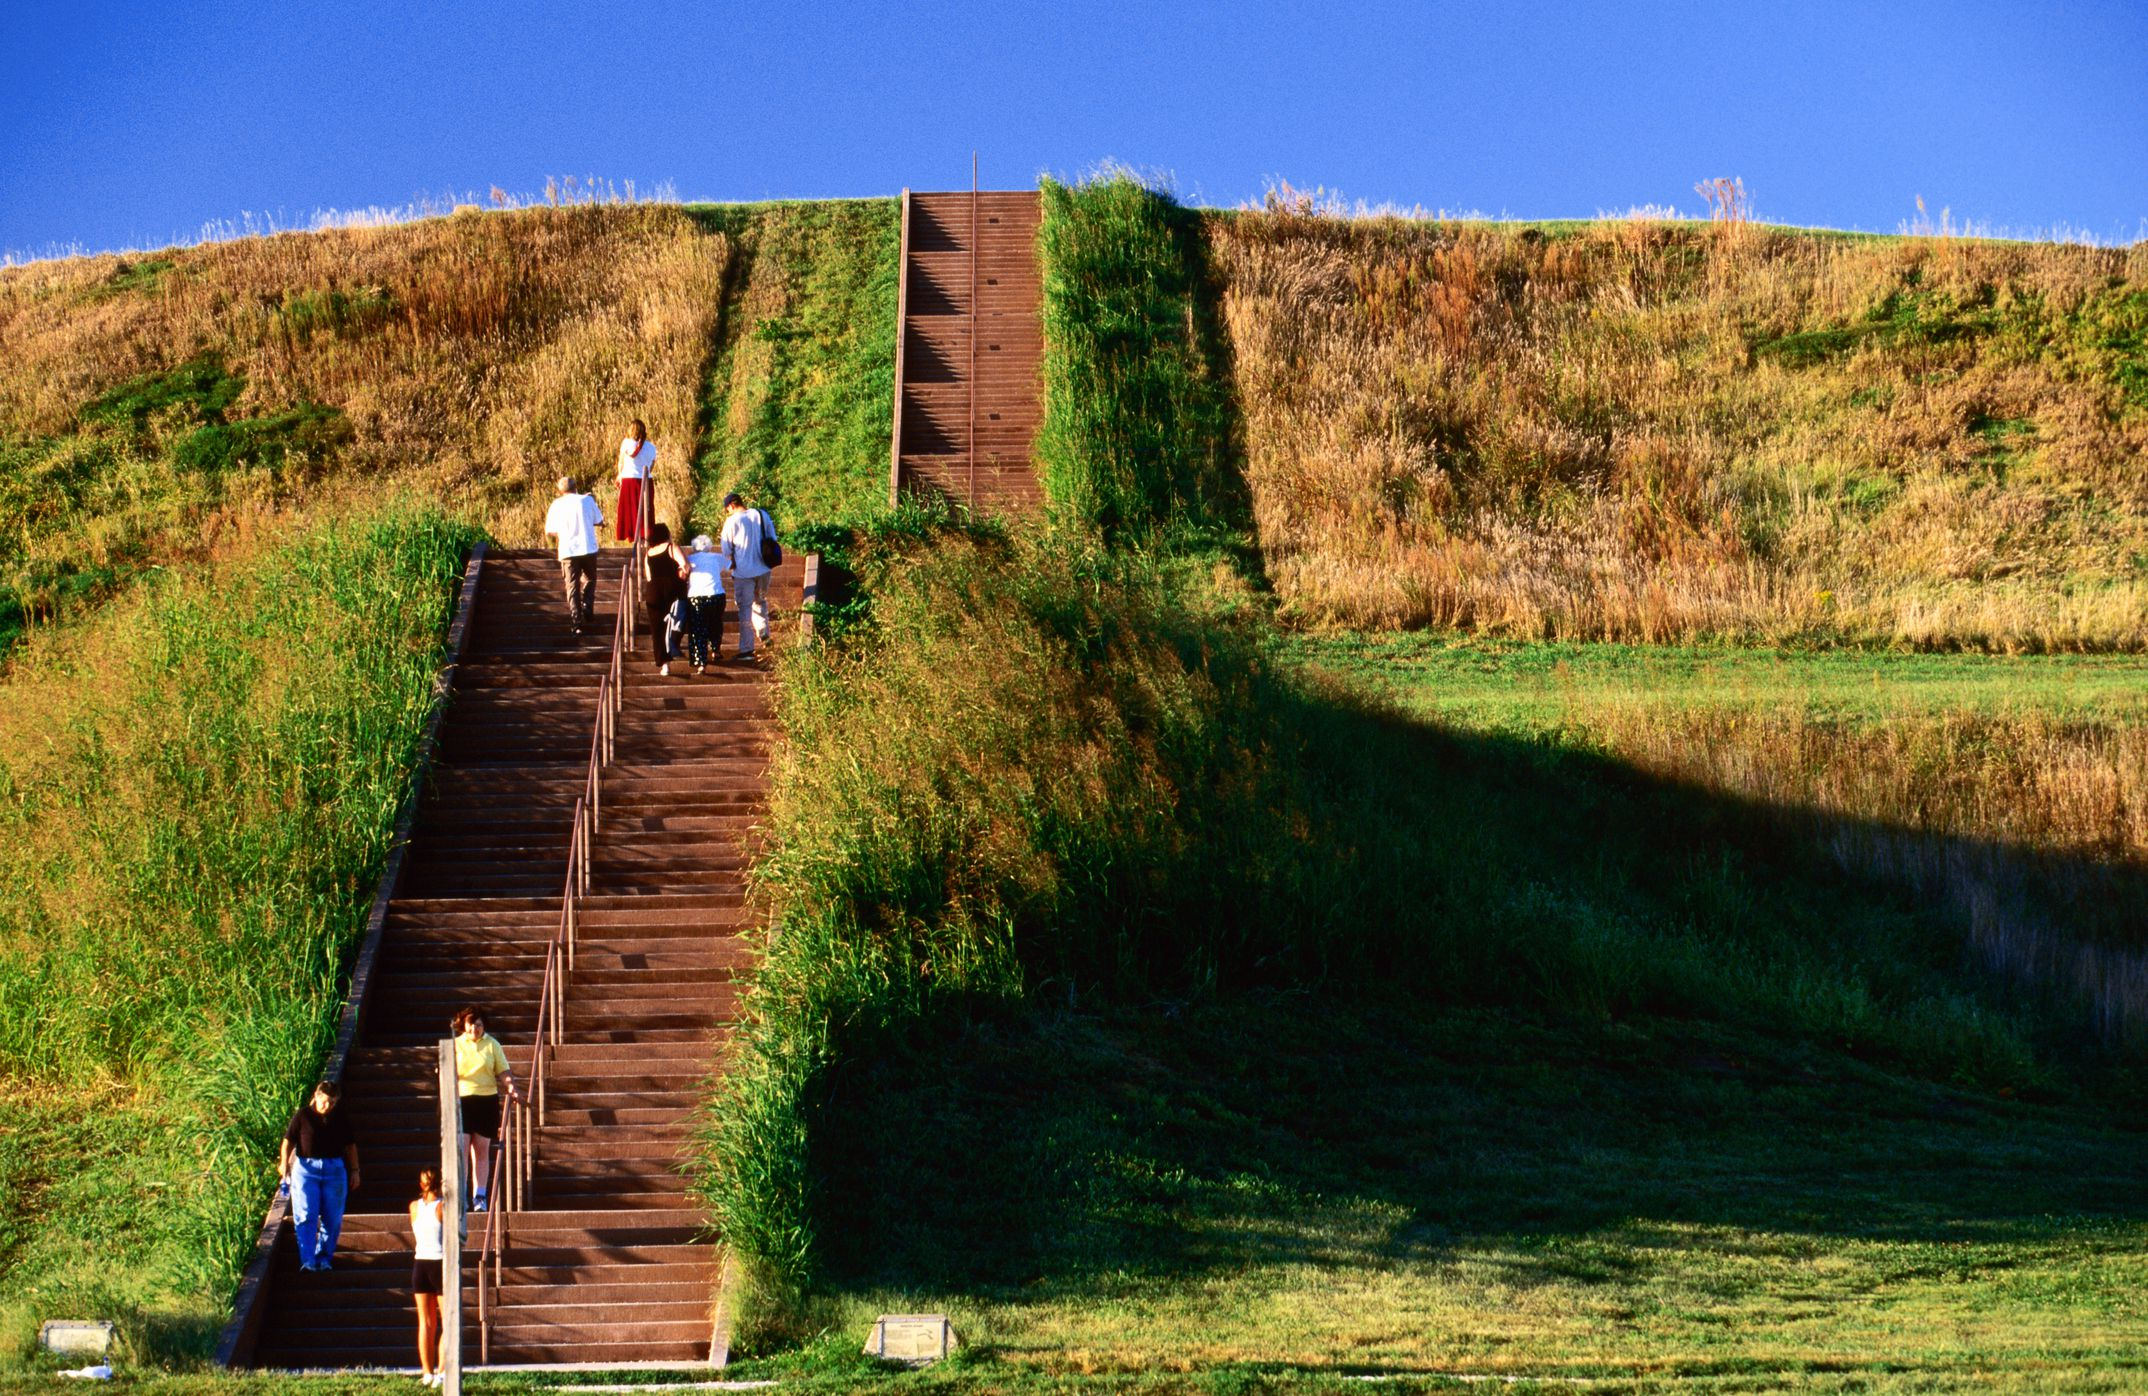 Reasons To Visit Cahokia Mounds State Historic Site